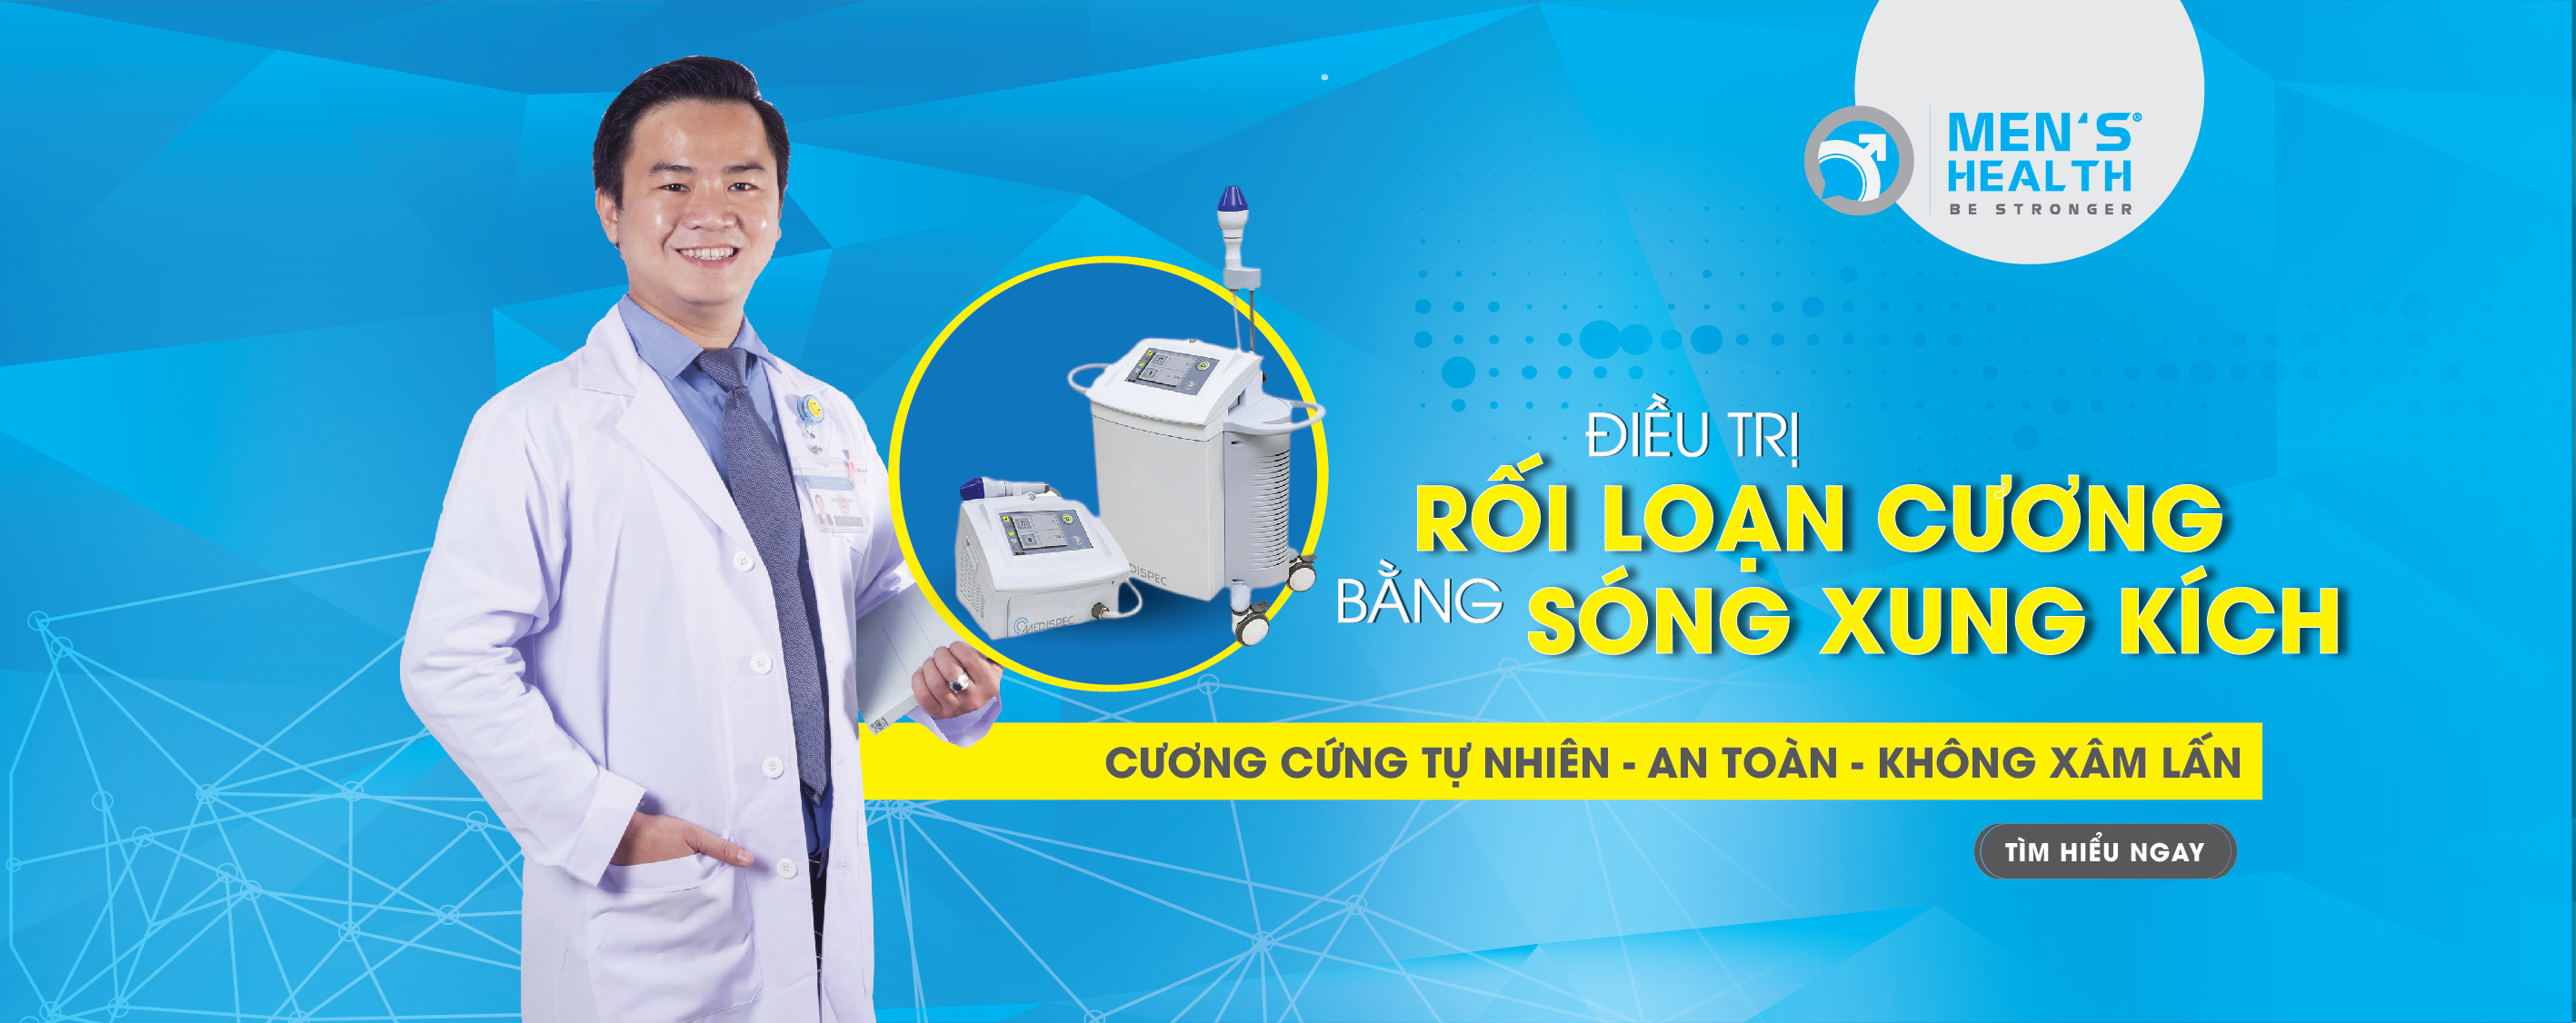 banner-dieu-tri-roi-loan-cuong-bang-shockwave